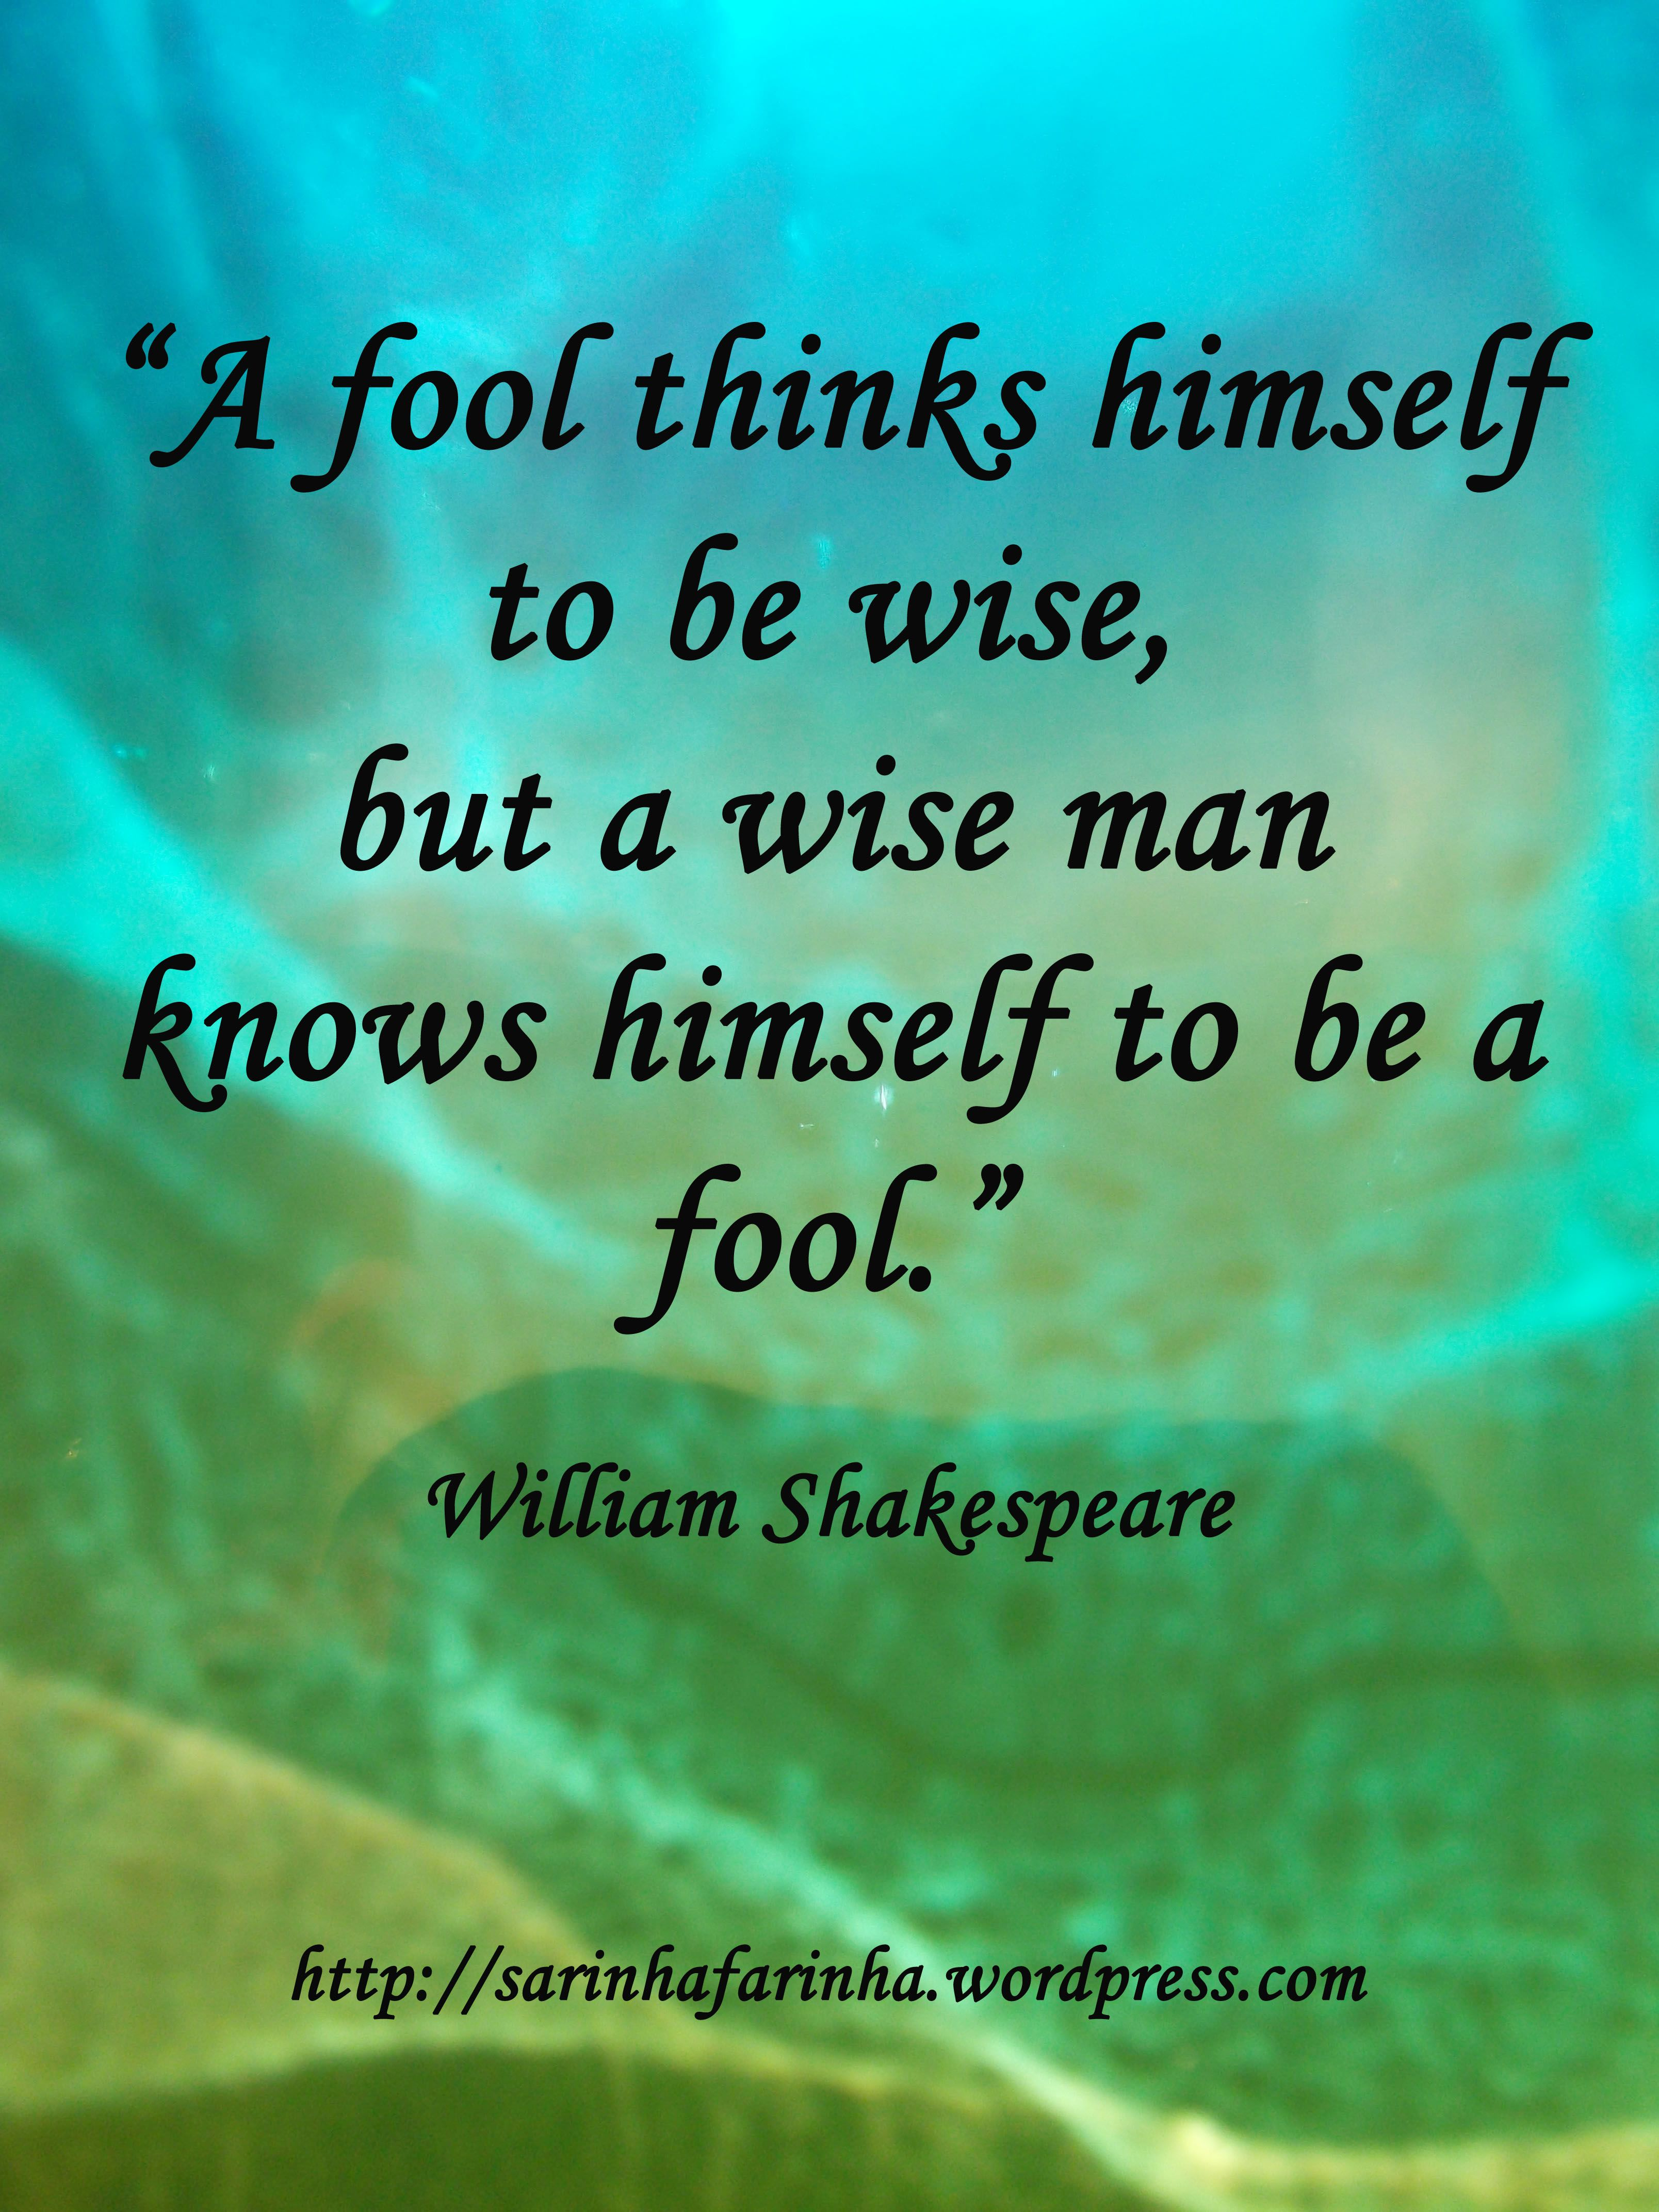 So True The More You Know Realize All Thing Of World Have No Idea About Quote To Live By Funny Yearbook Deep How Paraphrase Shakespeare